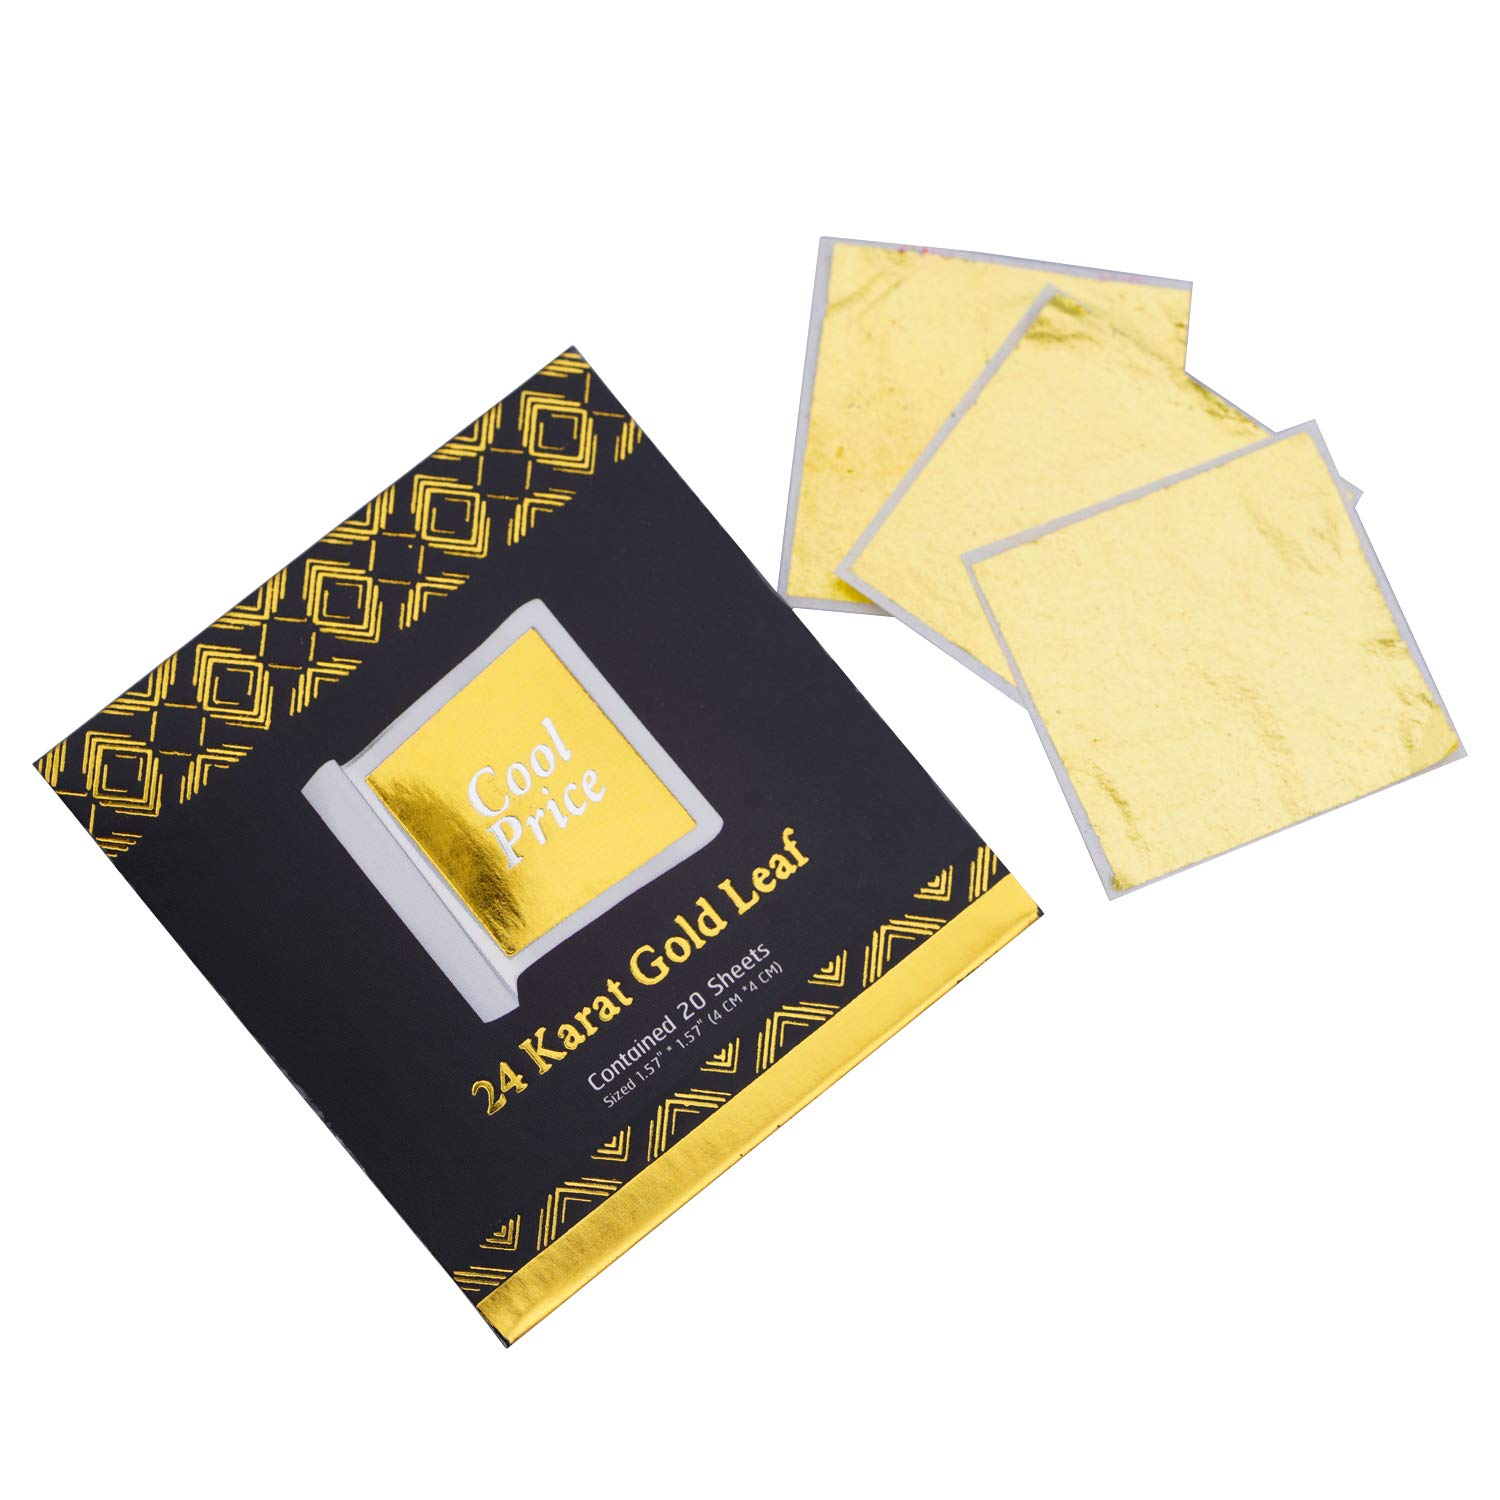 Cool Price Gold Leaf 20 Sheets Per Pack (1Pack)